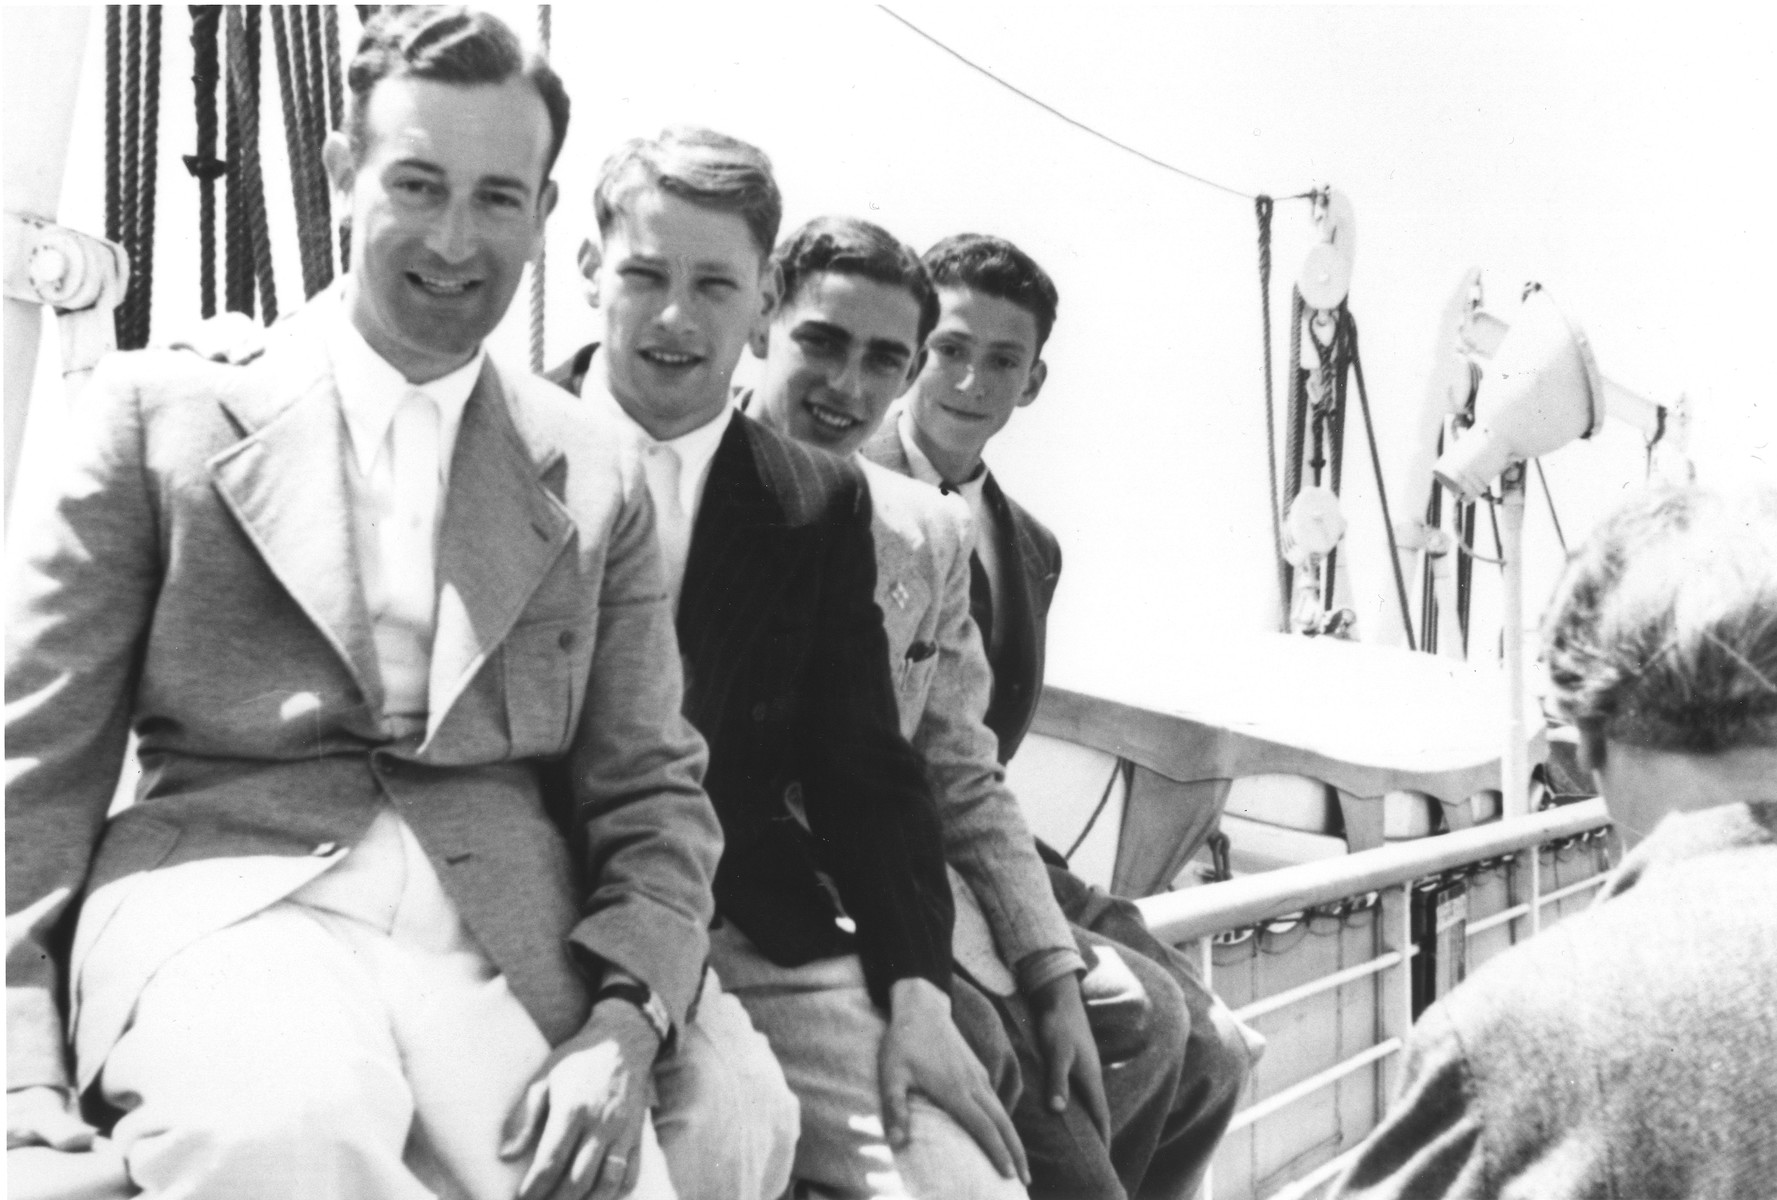 Four young Jewish refugees sit on the railing along the deck of the MS St. Louis.  Pictured from left to right are Werner Lenneberg, Fritz Hilb, Fritz Buff and unknown.